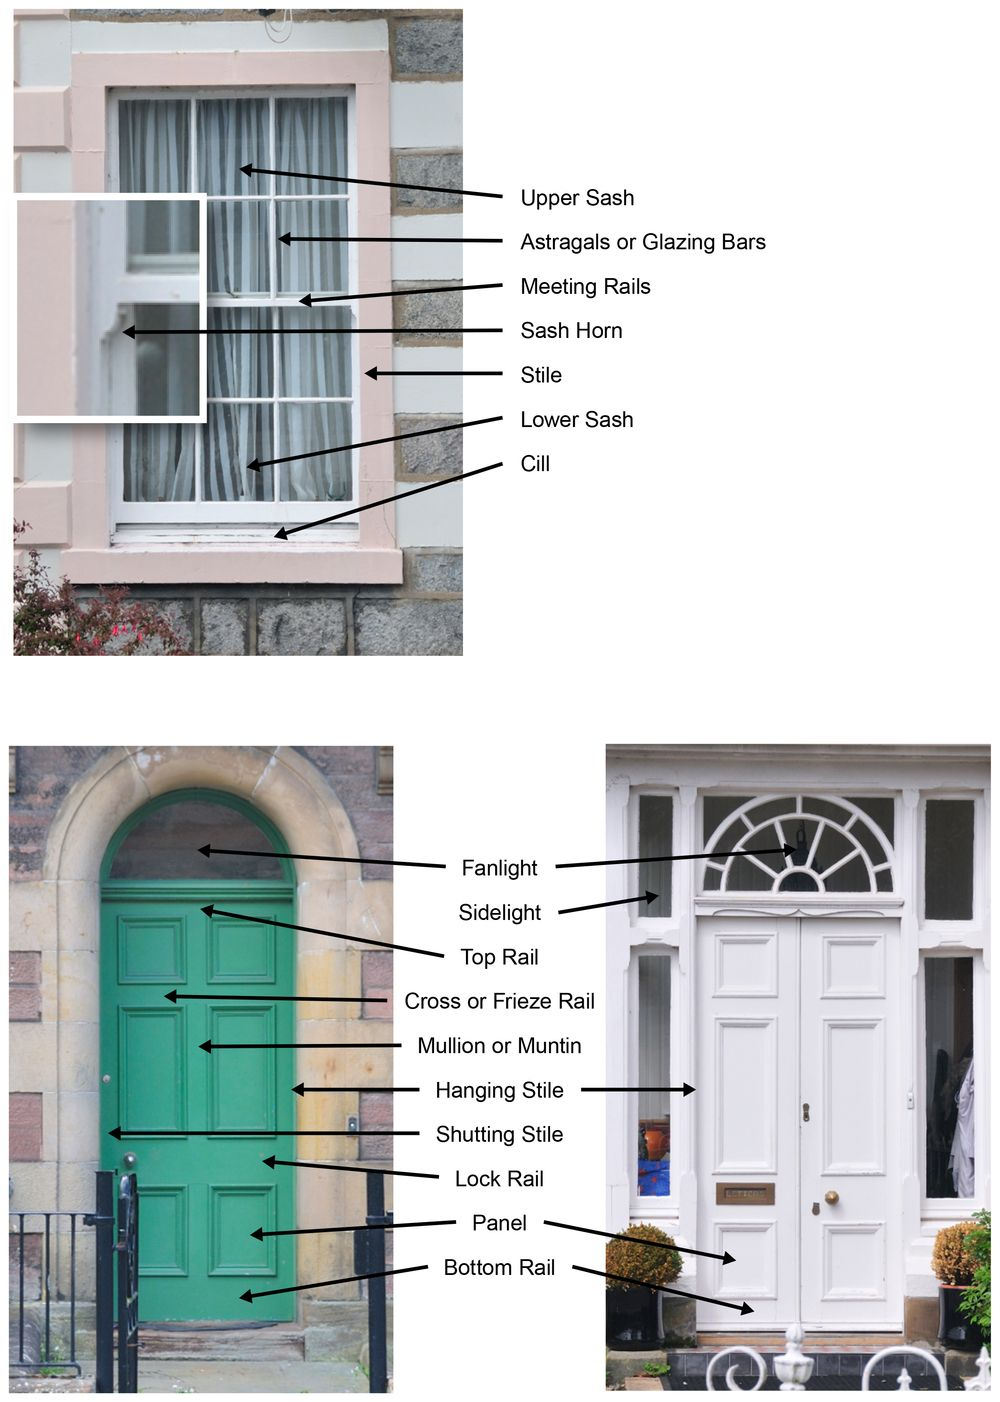 The anatomy of a traditional sash and case window and traditional ...